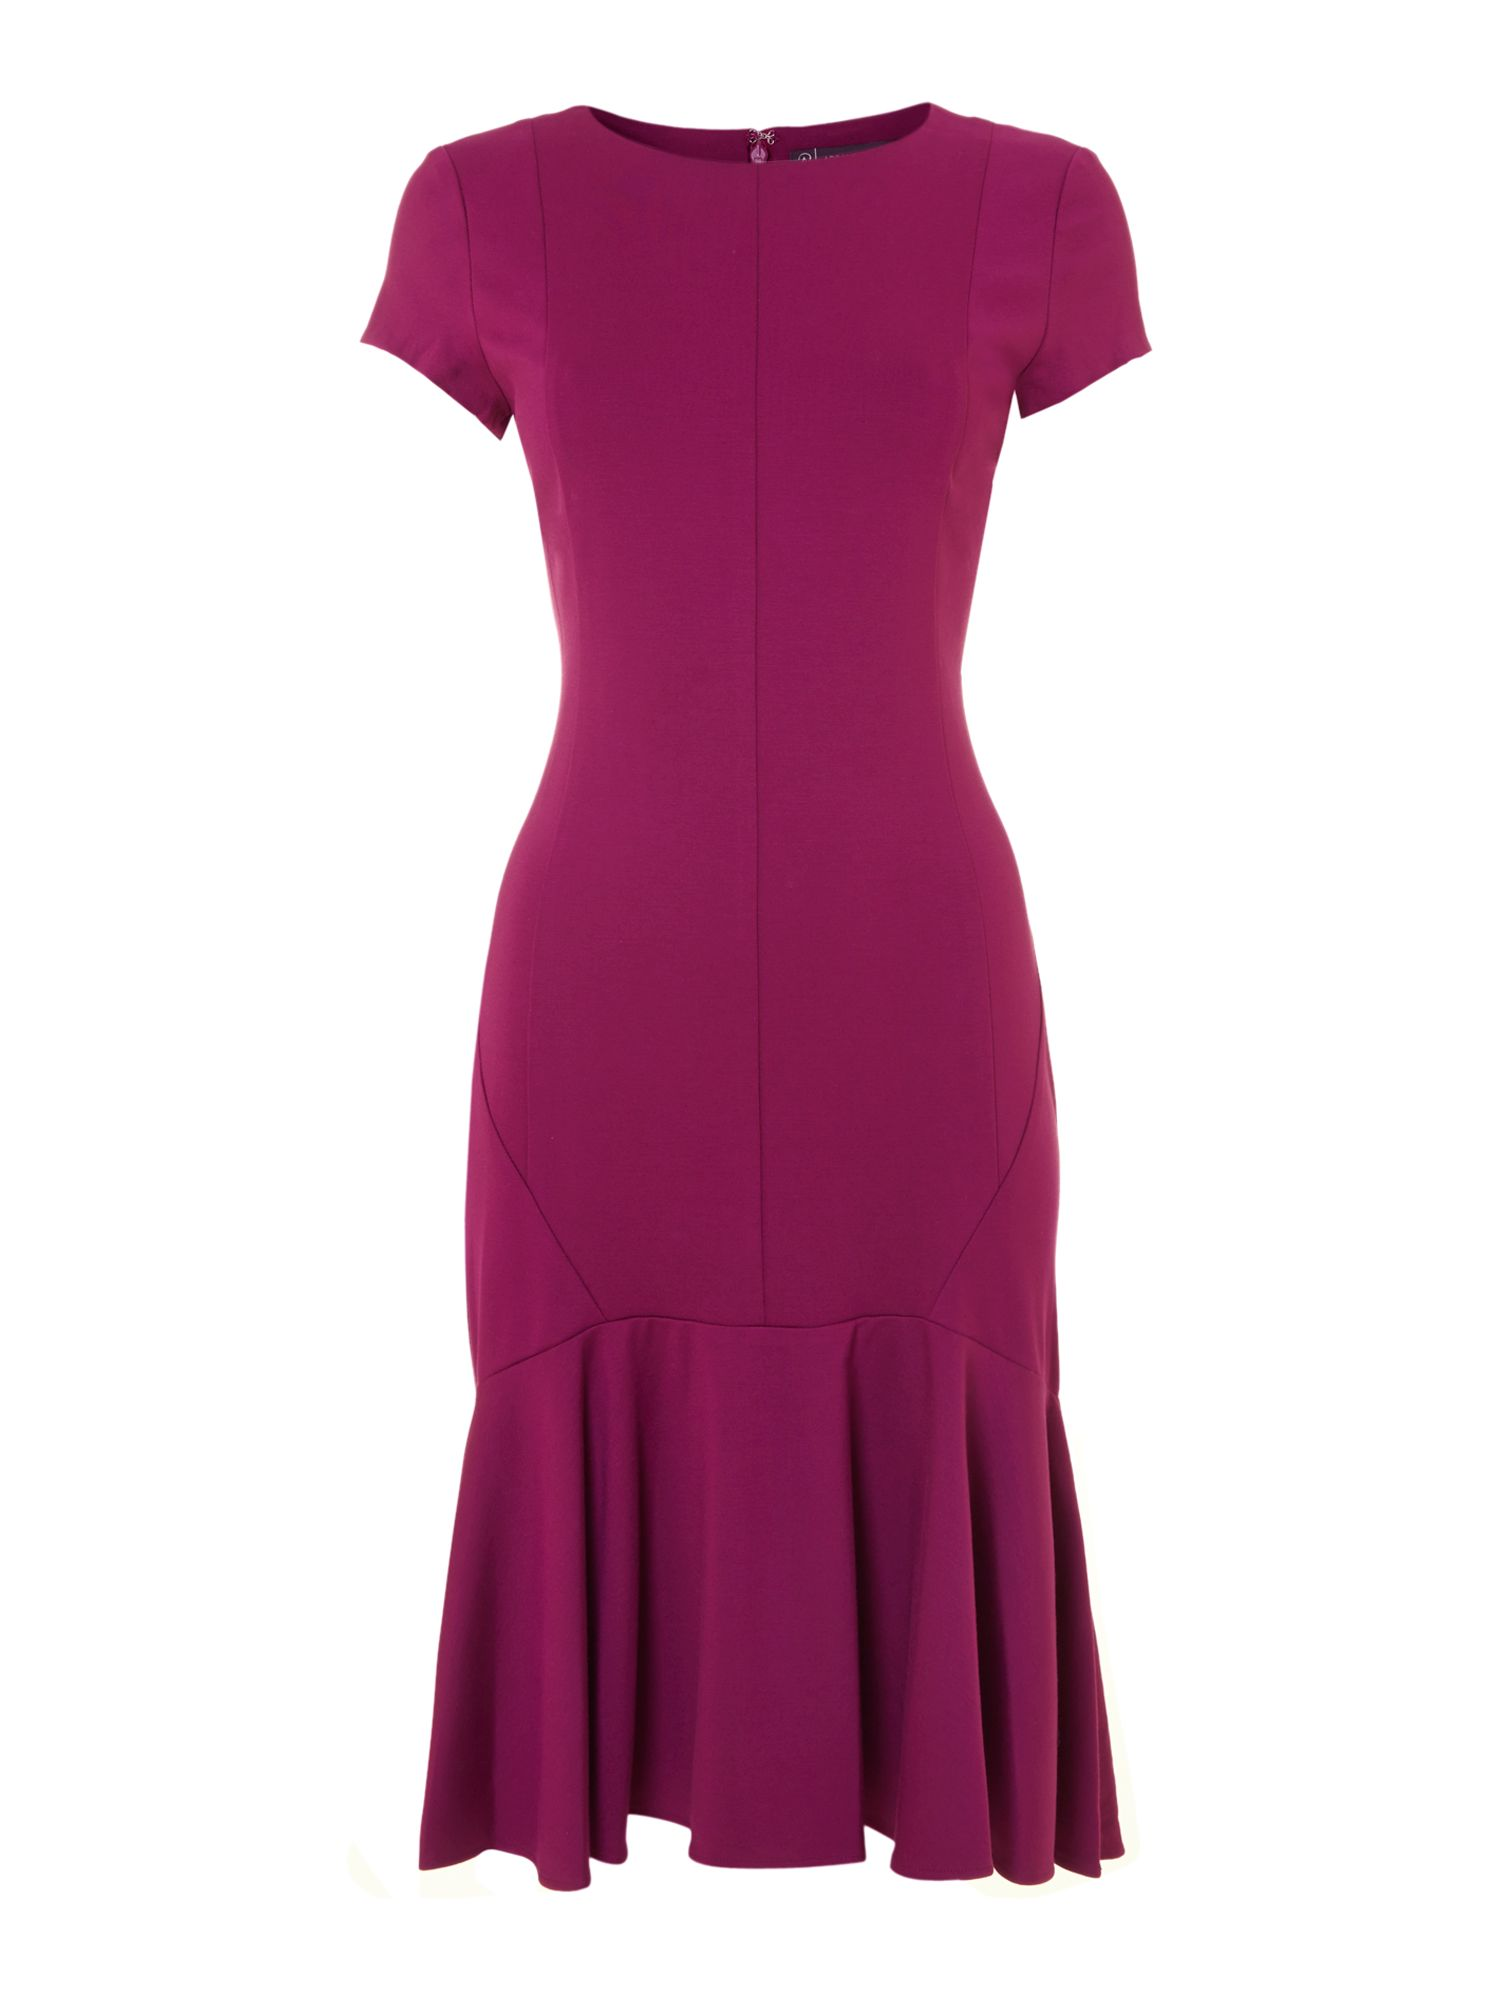 Adrianna Papell Drop Waist Peplum Dress $35.00 AT vintagedancer.com